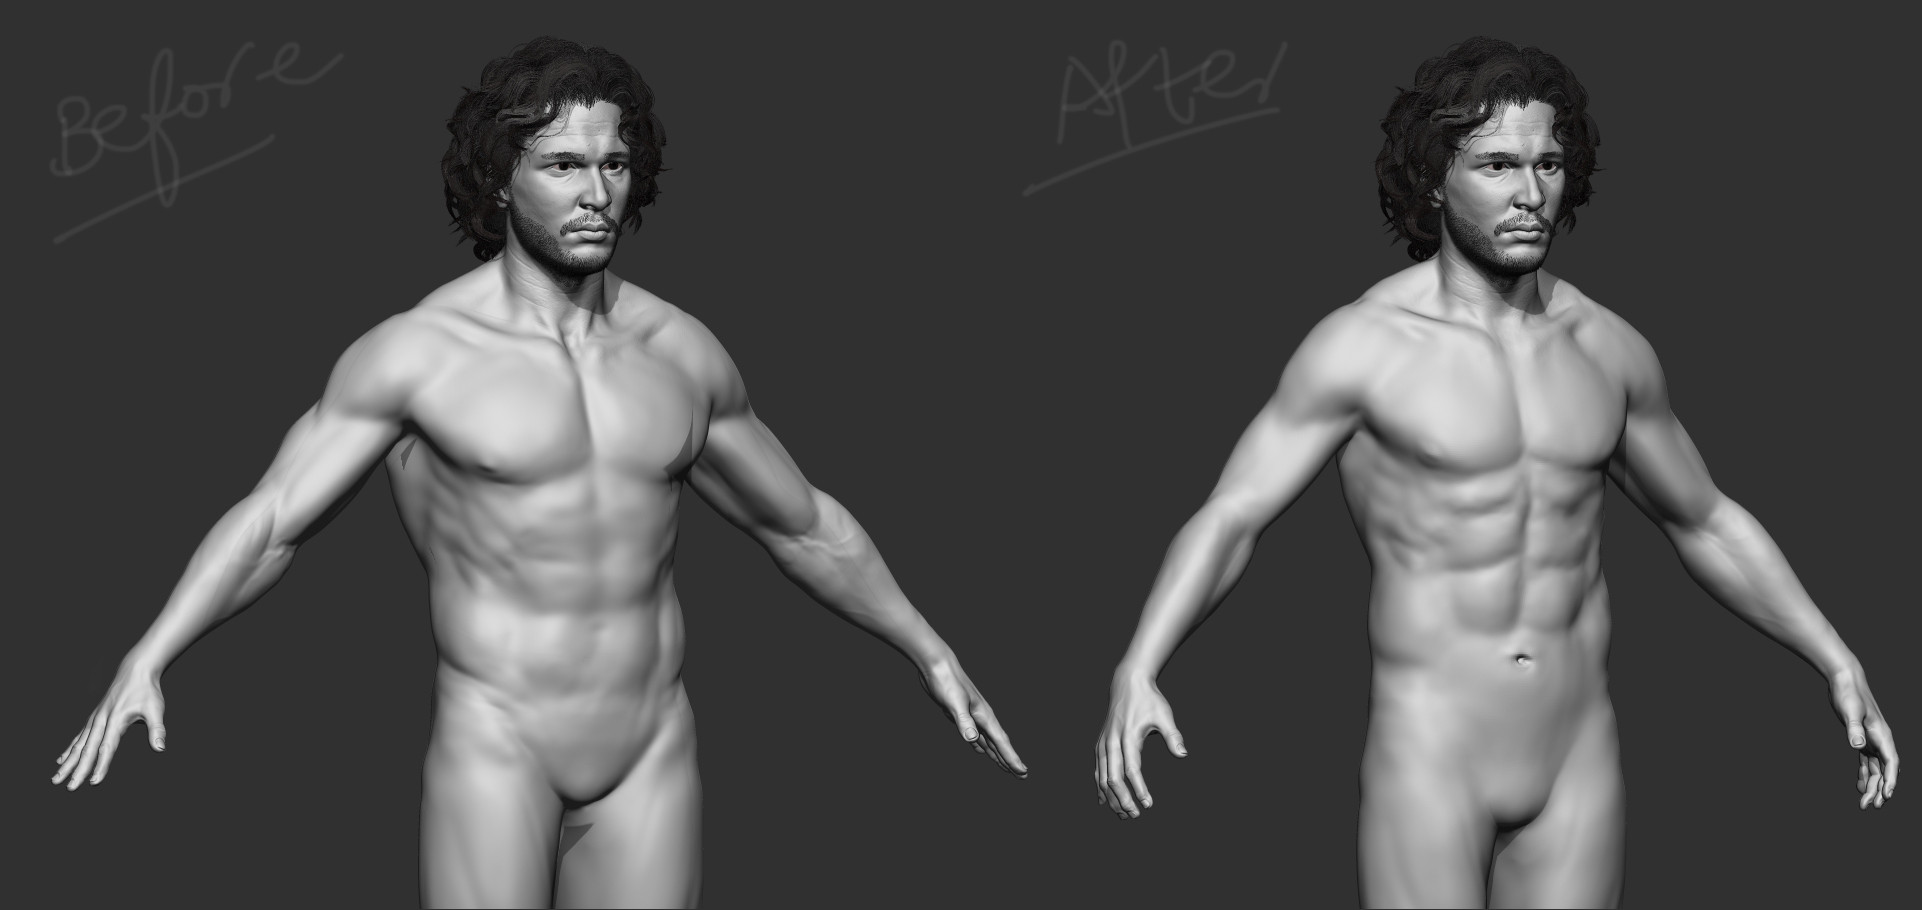 Body Proportions update. (Based on real actor height and proportions)